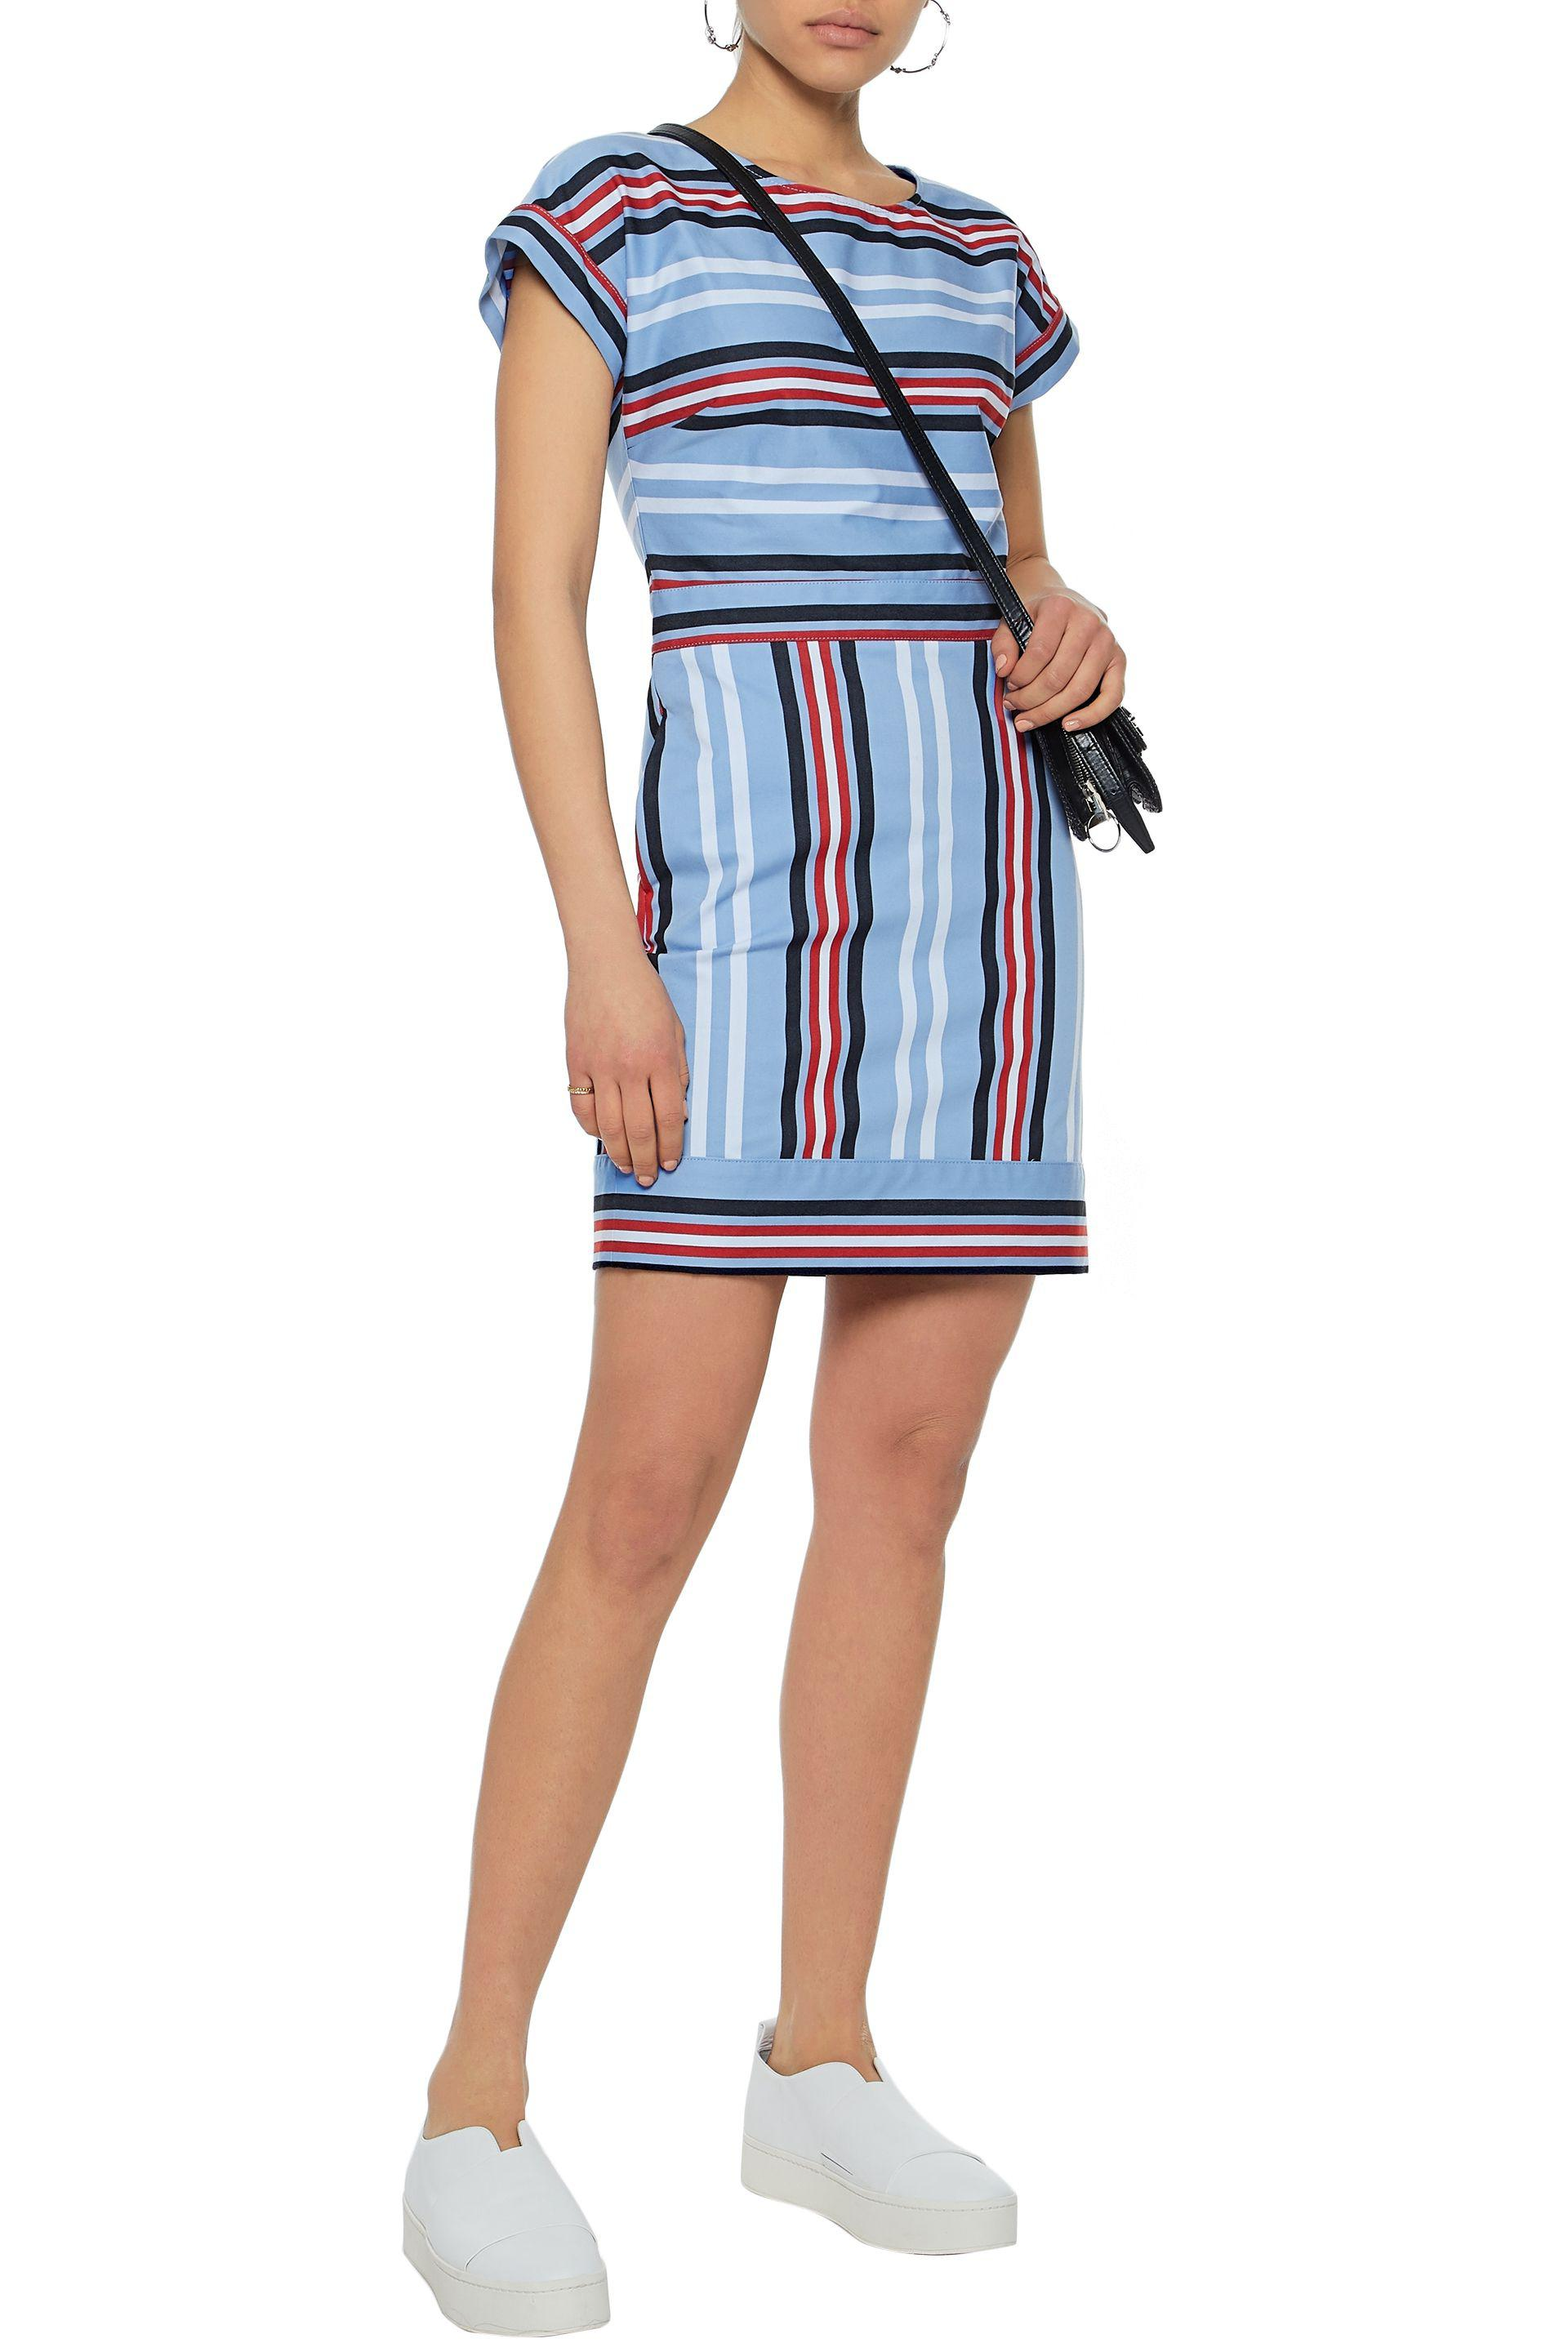 Love Moschino Woman Striped Cotton-blend Twill Mini Dress Sky Blue Size 44 Love Moschino